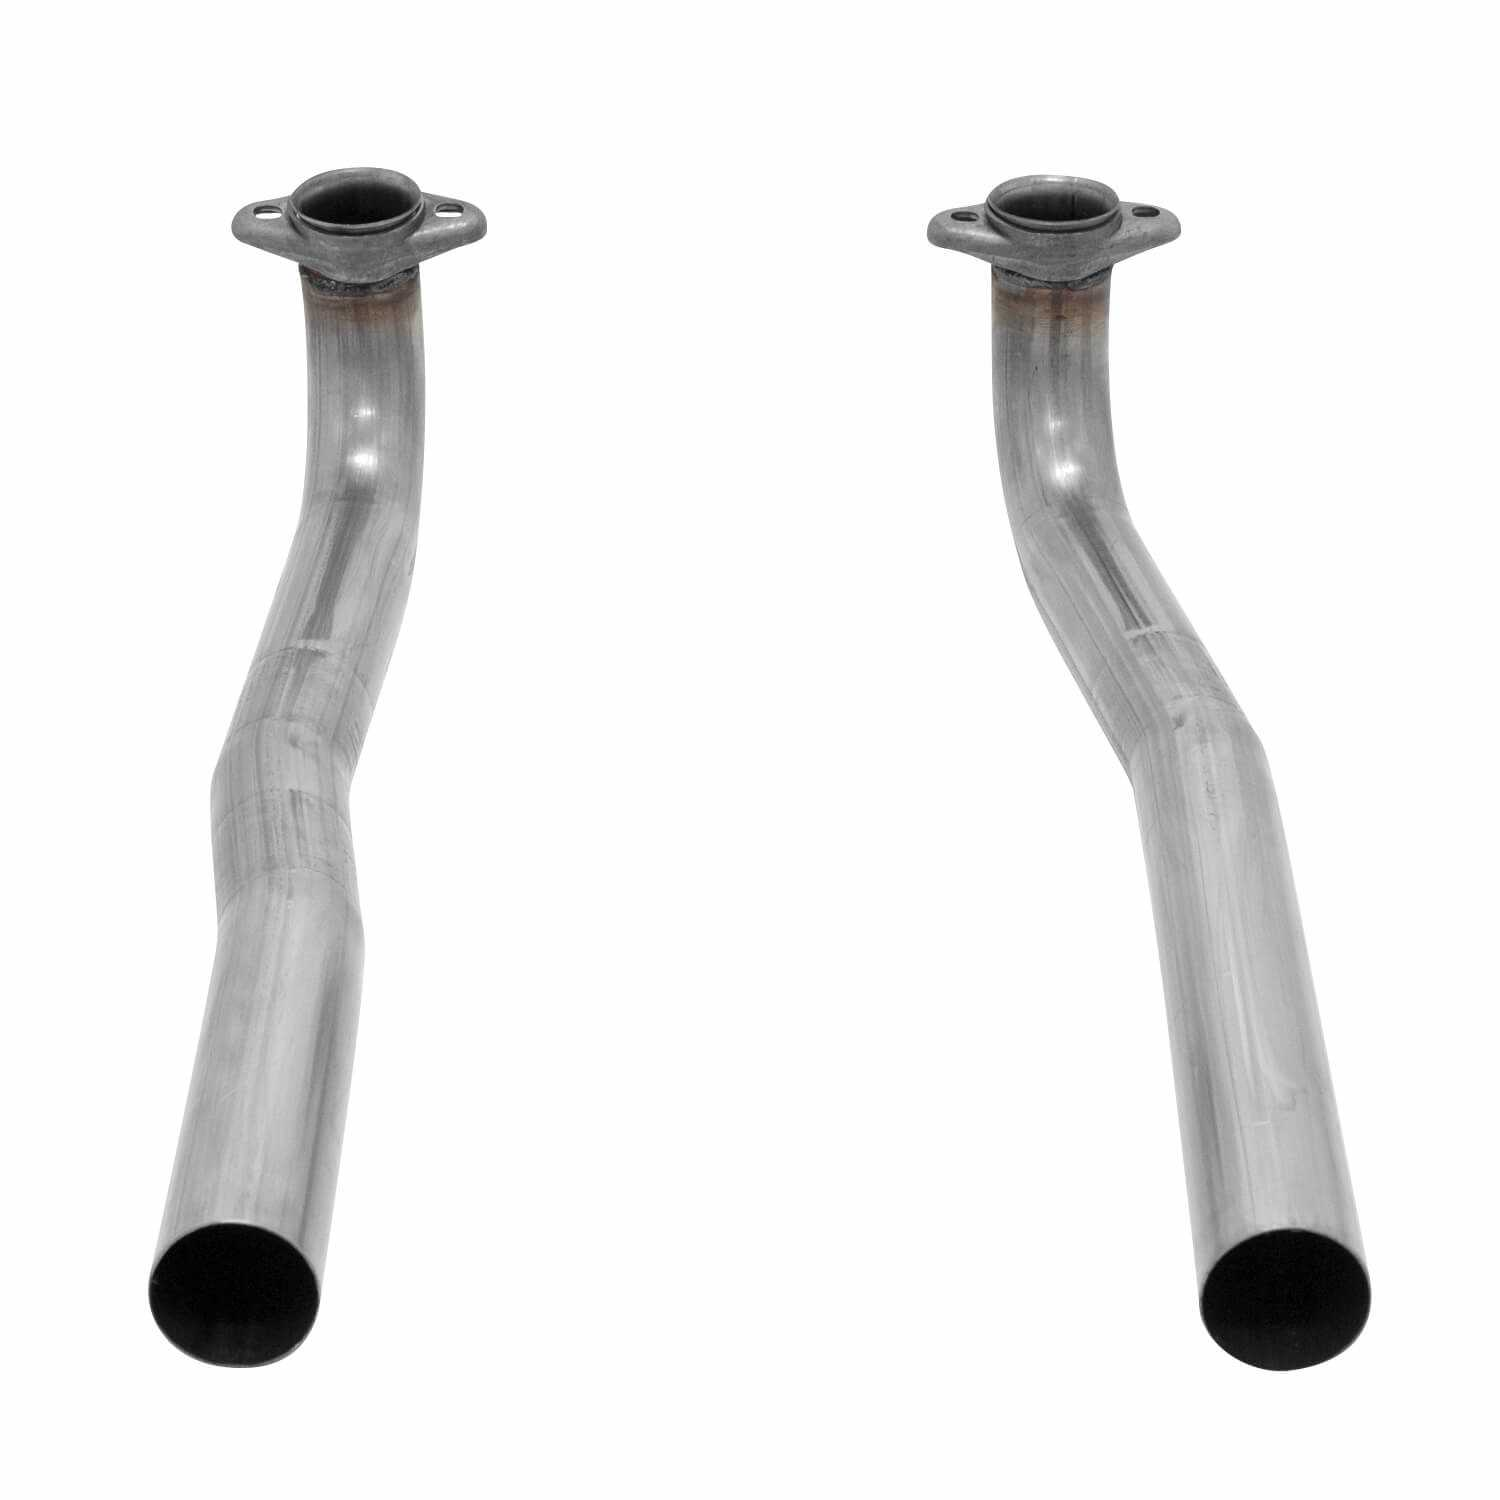 81073 Flowmaster Exhaust Manifold Downpipe